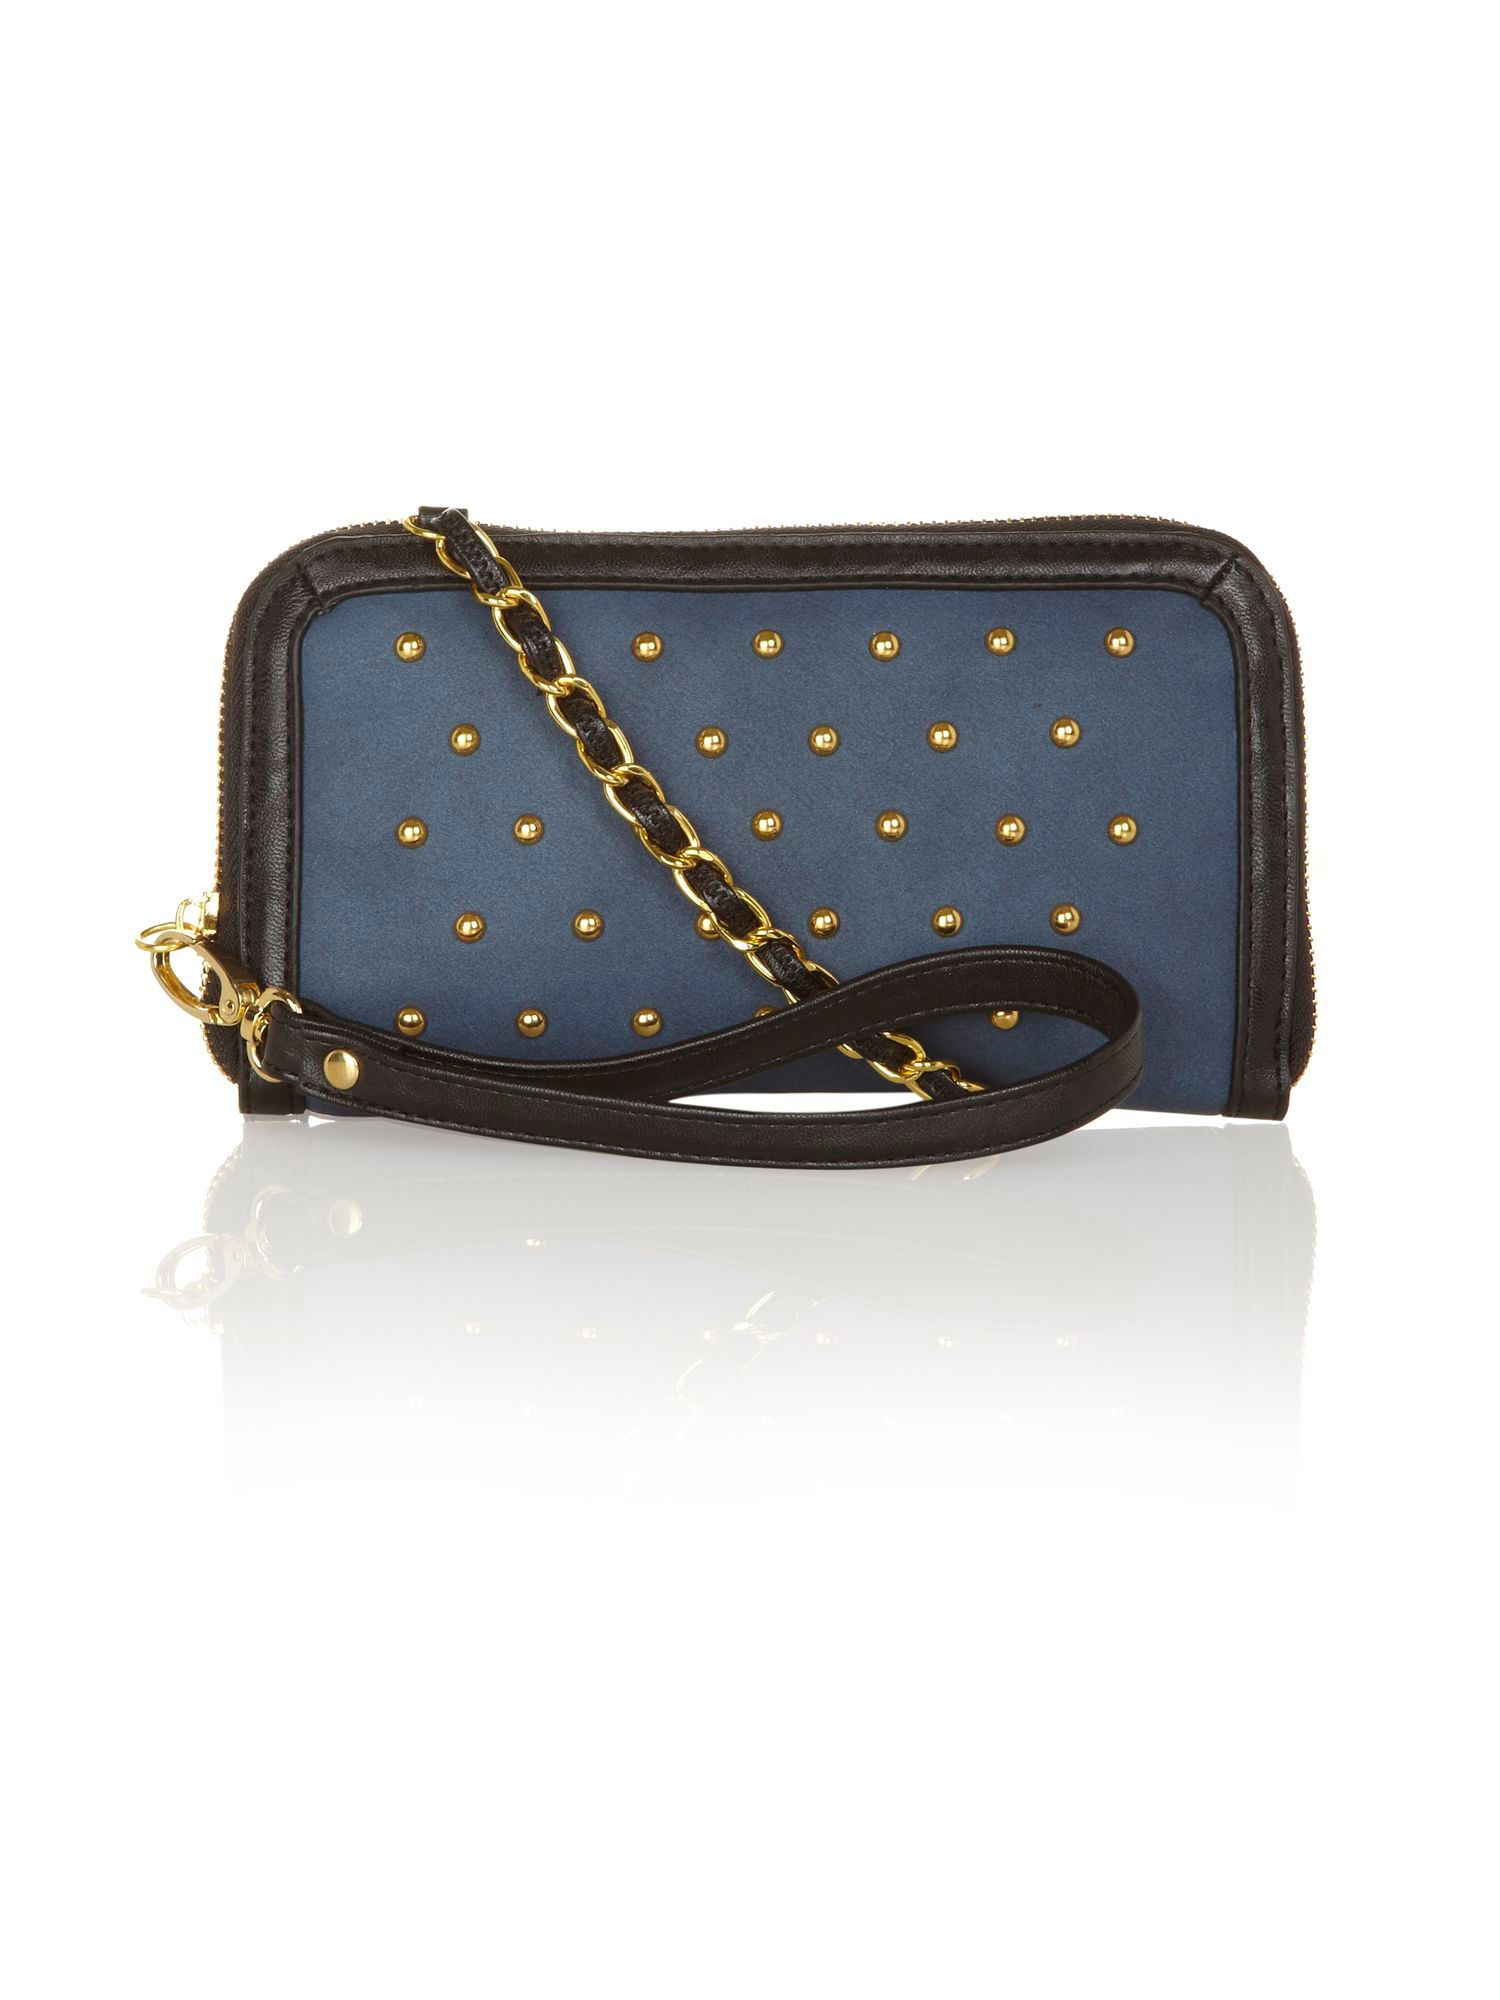 Studded clutch bag.